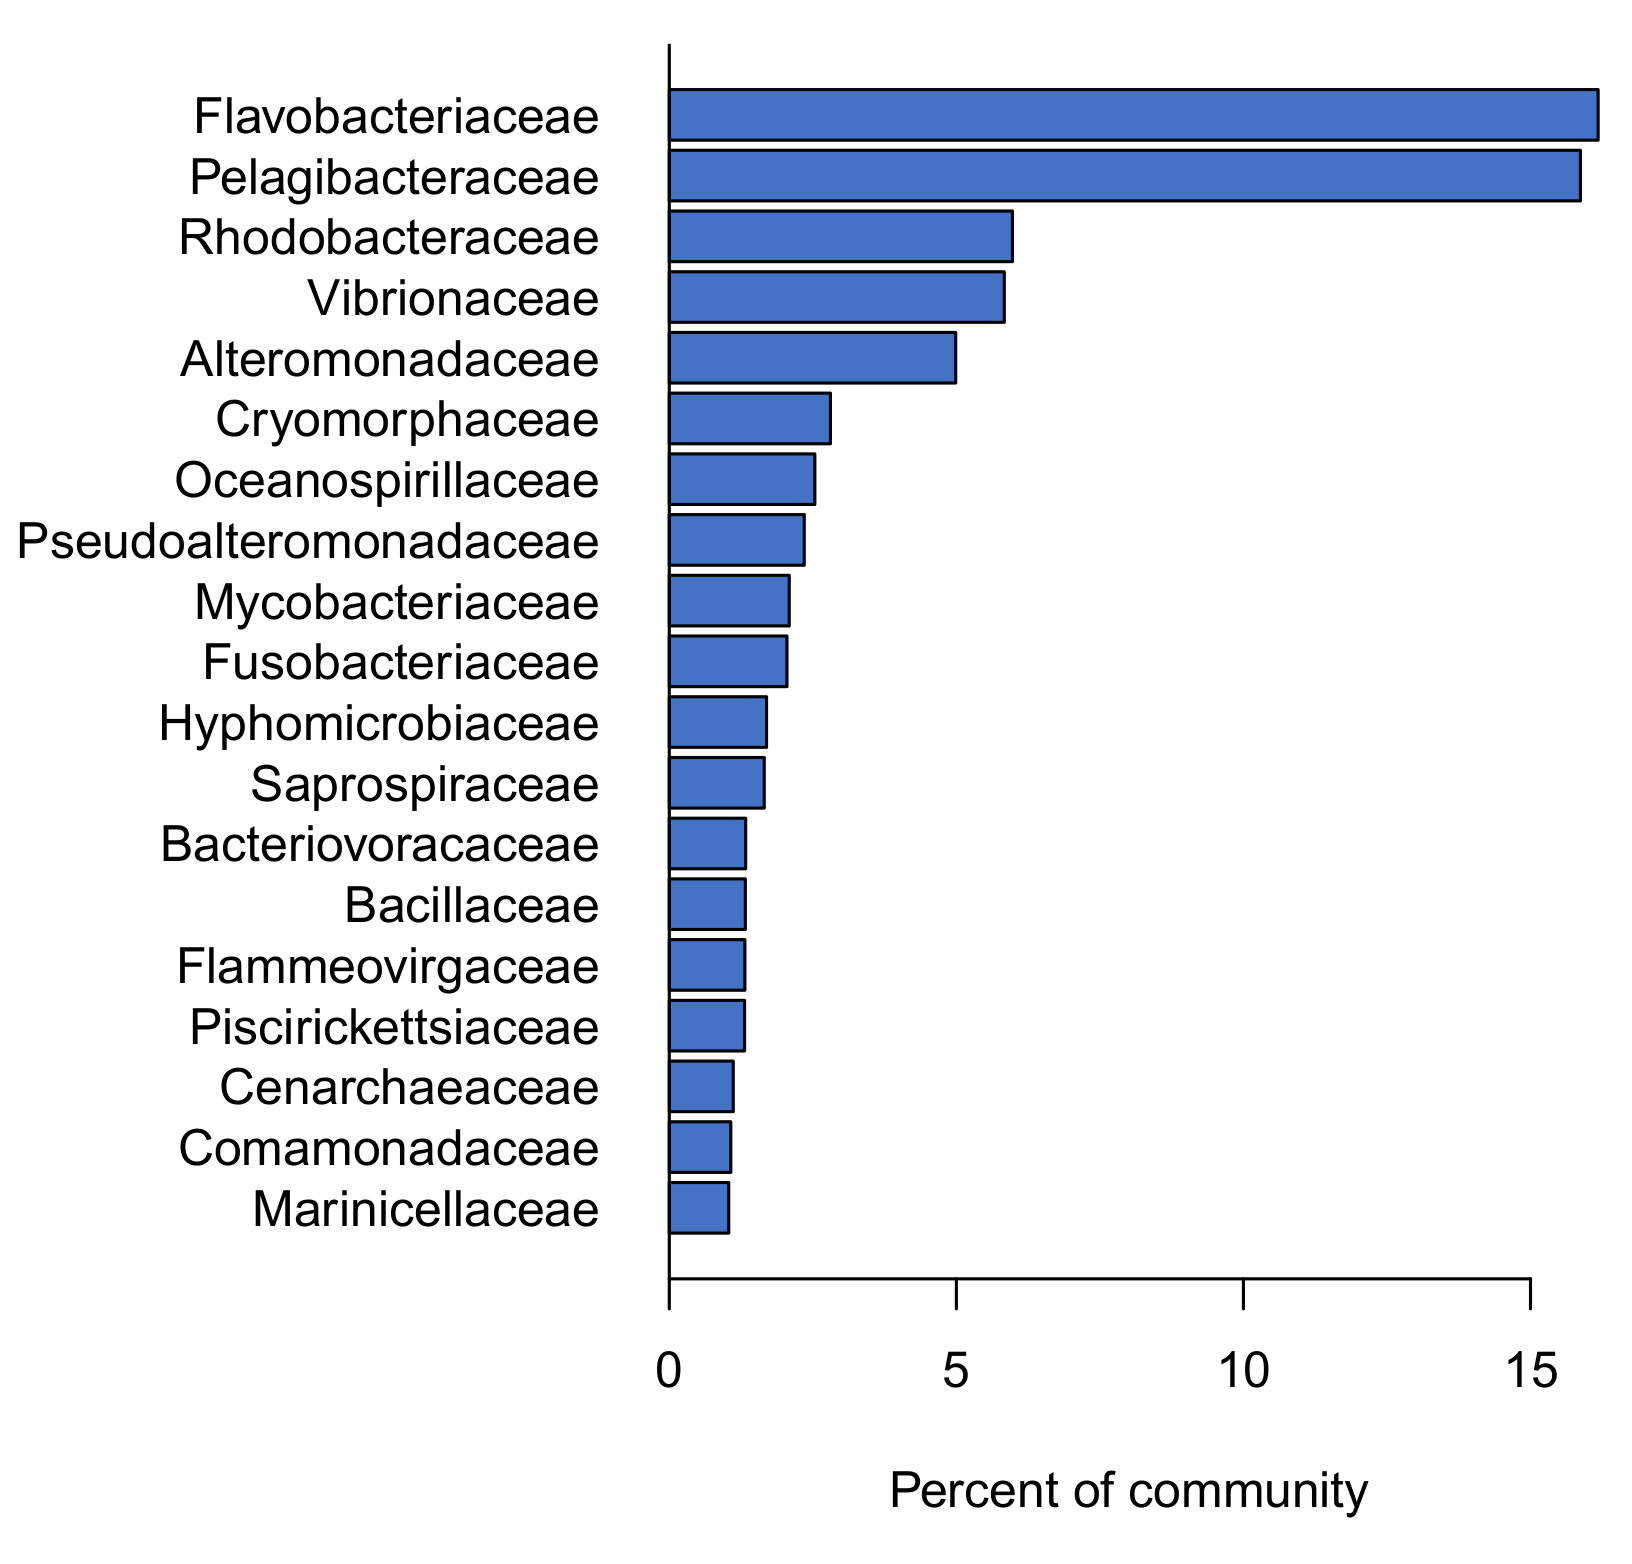 Abundance of each family in the core microbiome